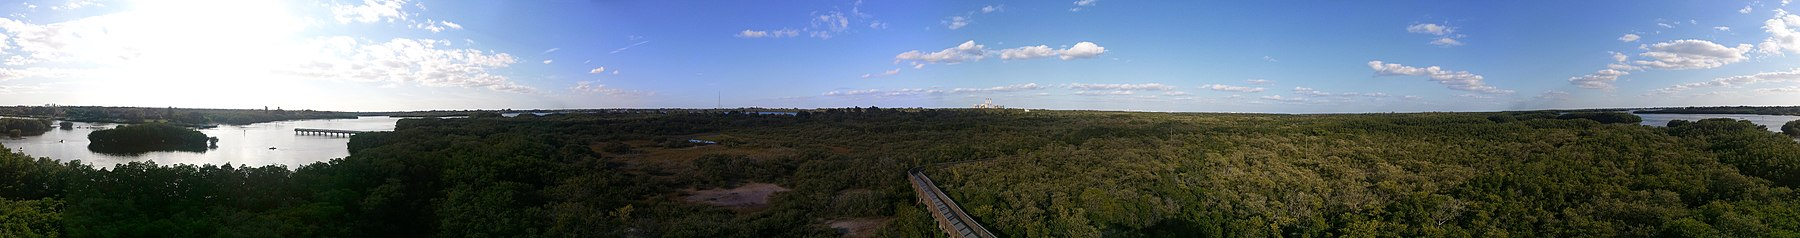 Panorama of mostly scrubby swamp, with various buildings/structures visible on the horizon.